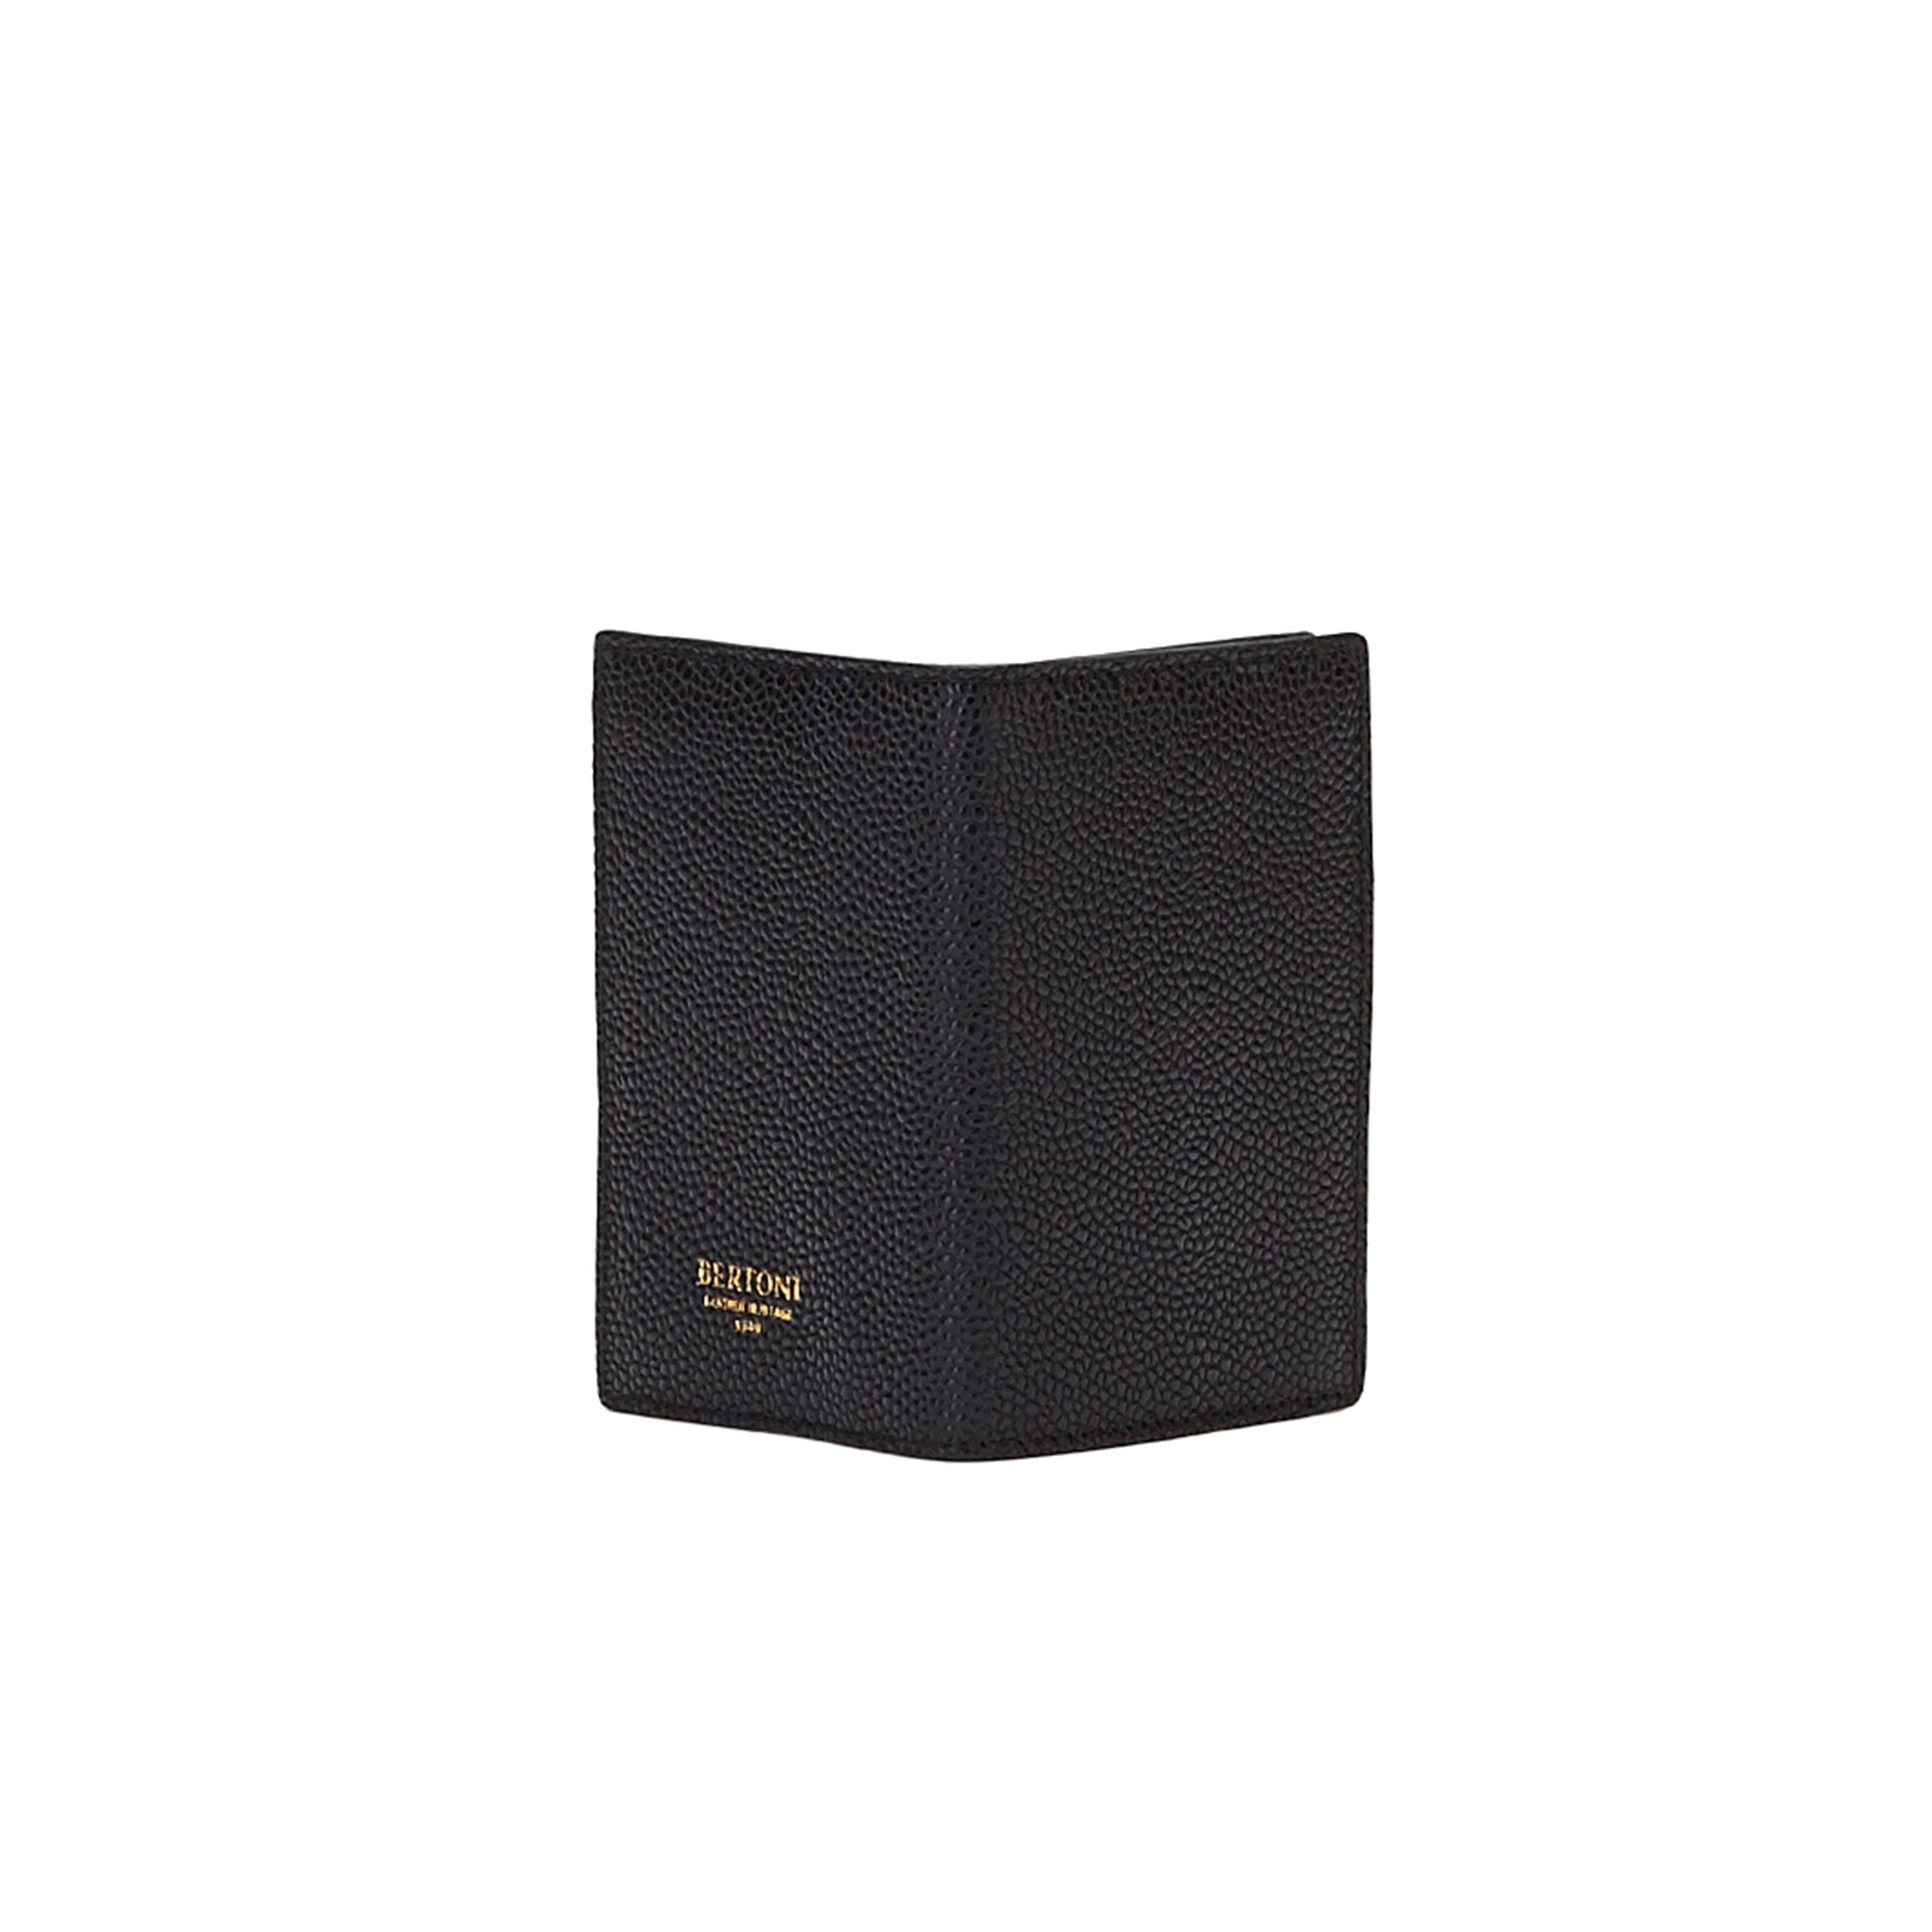 The black grain calf Business Card Holder by Bertoni 1949 03